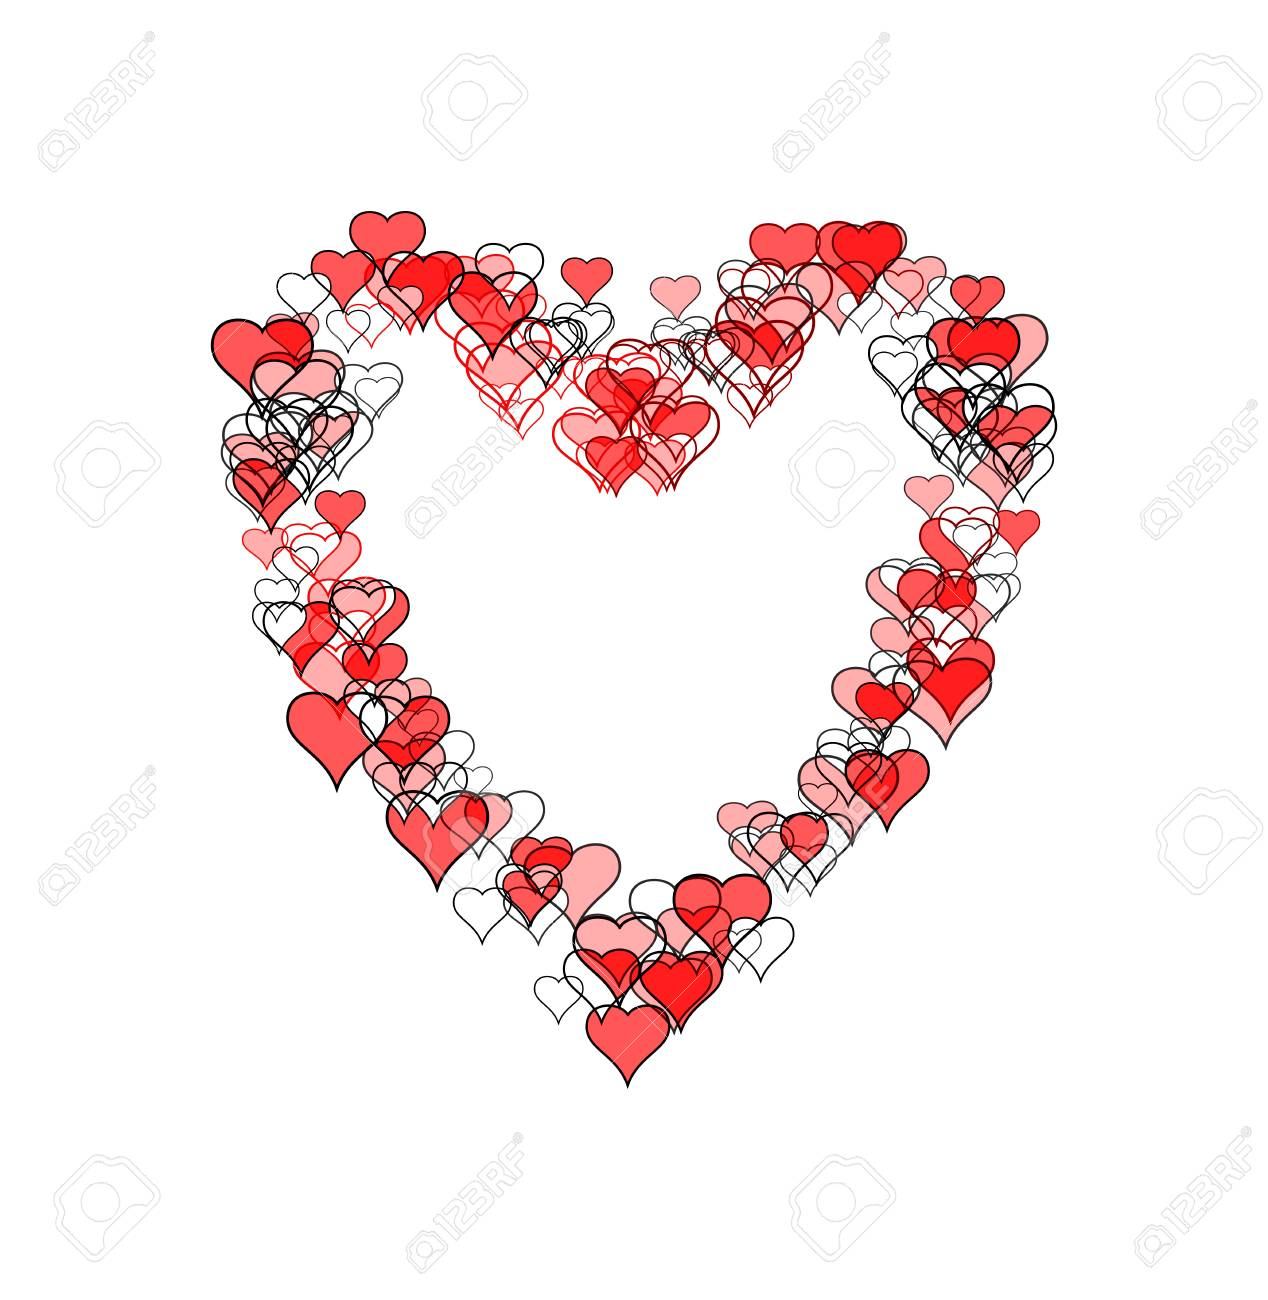 Large Heart Shape Made Of Many Smaller Heart Shapes Some Outline